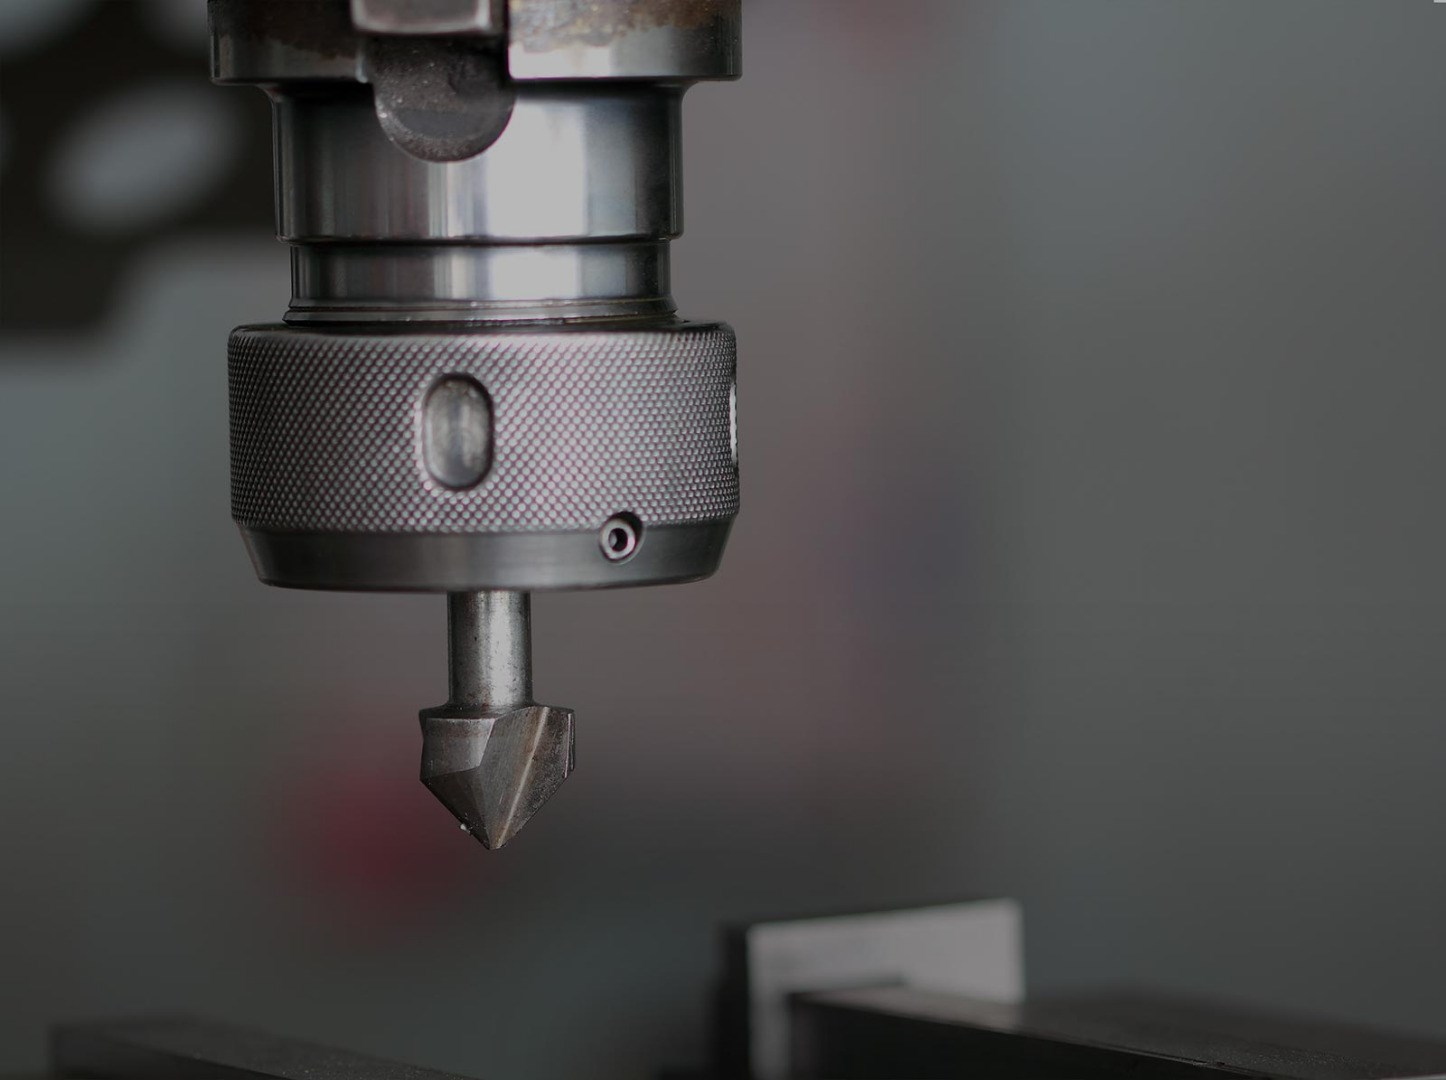 Page background image - Industrial drill press